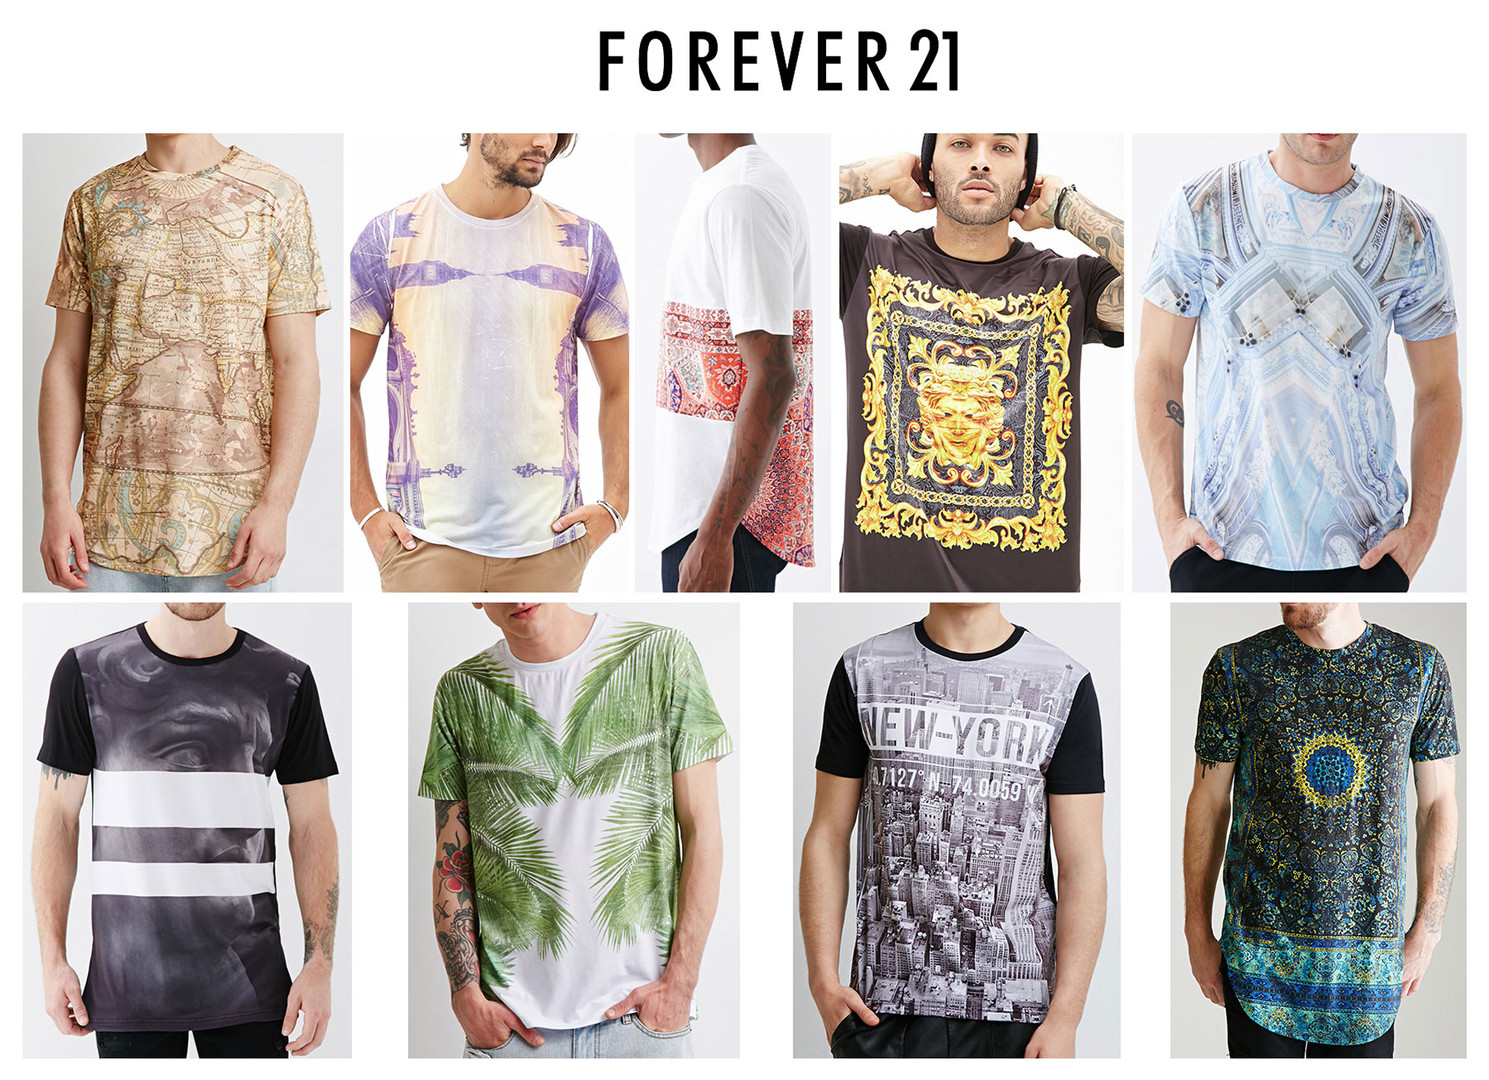 Graphic/body development and fabric sourcing for 21 Men. Sold at Forever 21 retail stores and online.